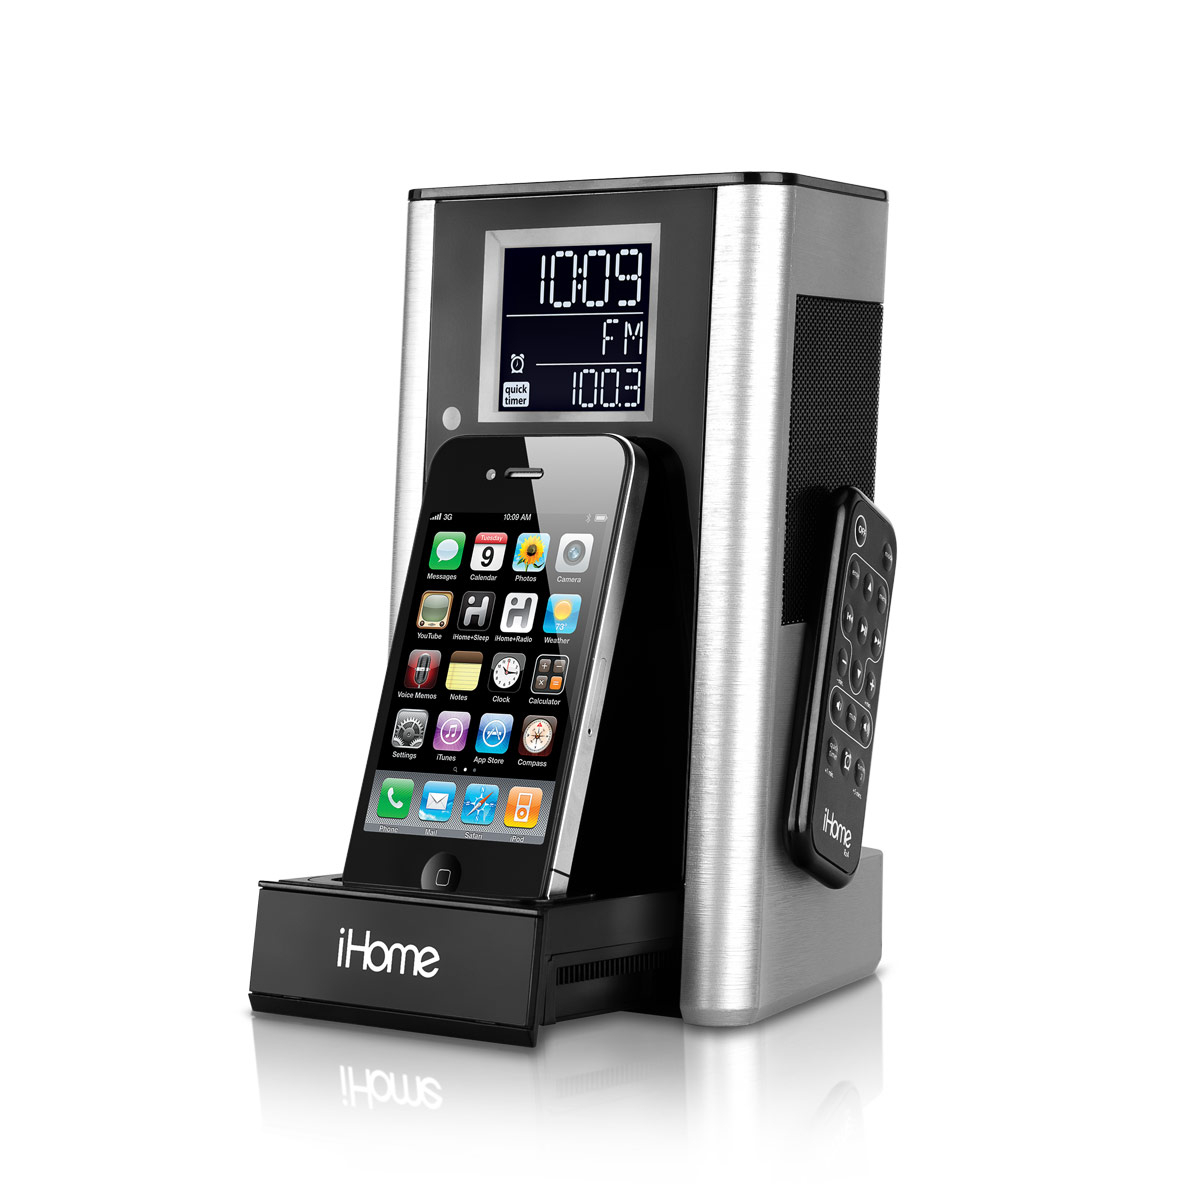 ihome ip39 kitchen timer and alarm clock radio speaker system for iphone ipod price. Black Bedroom Furniture Sets. Home Design Ideas